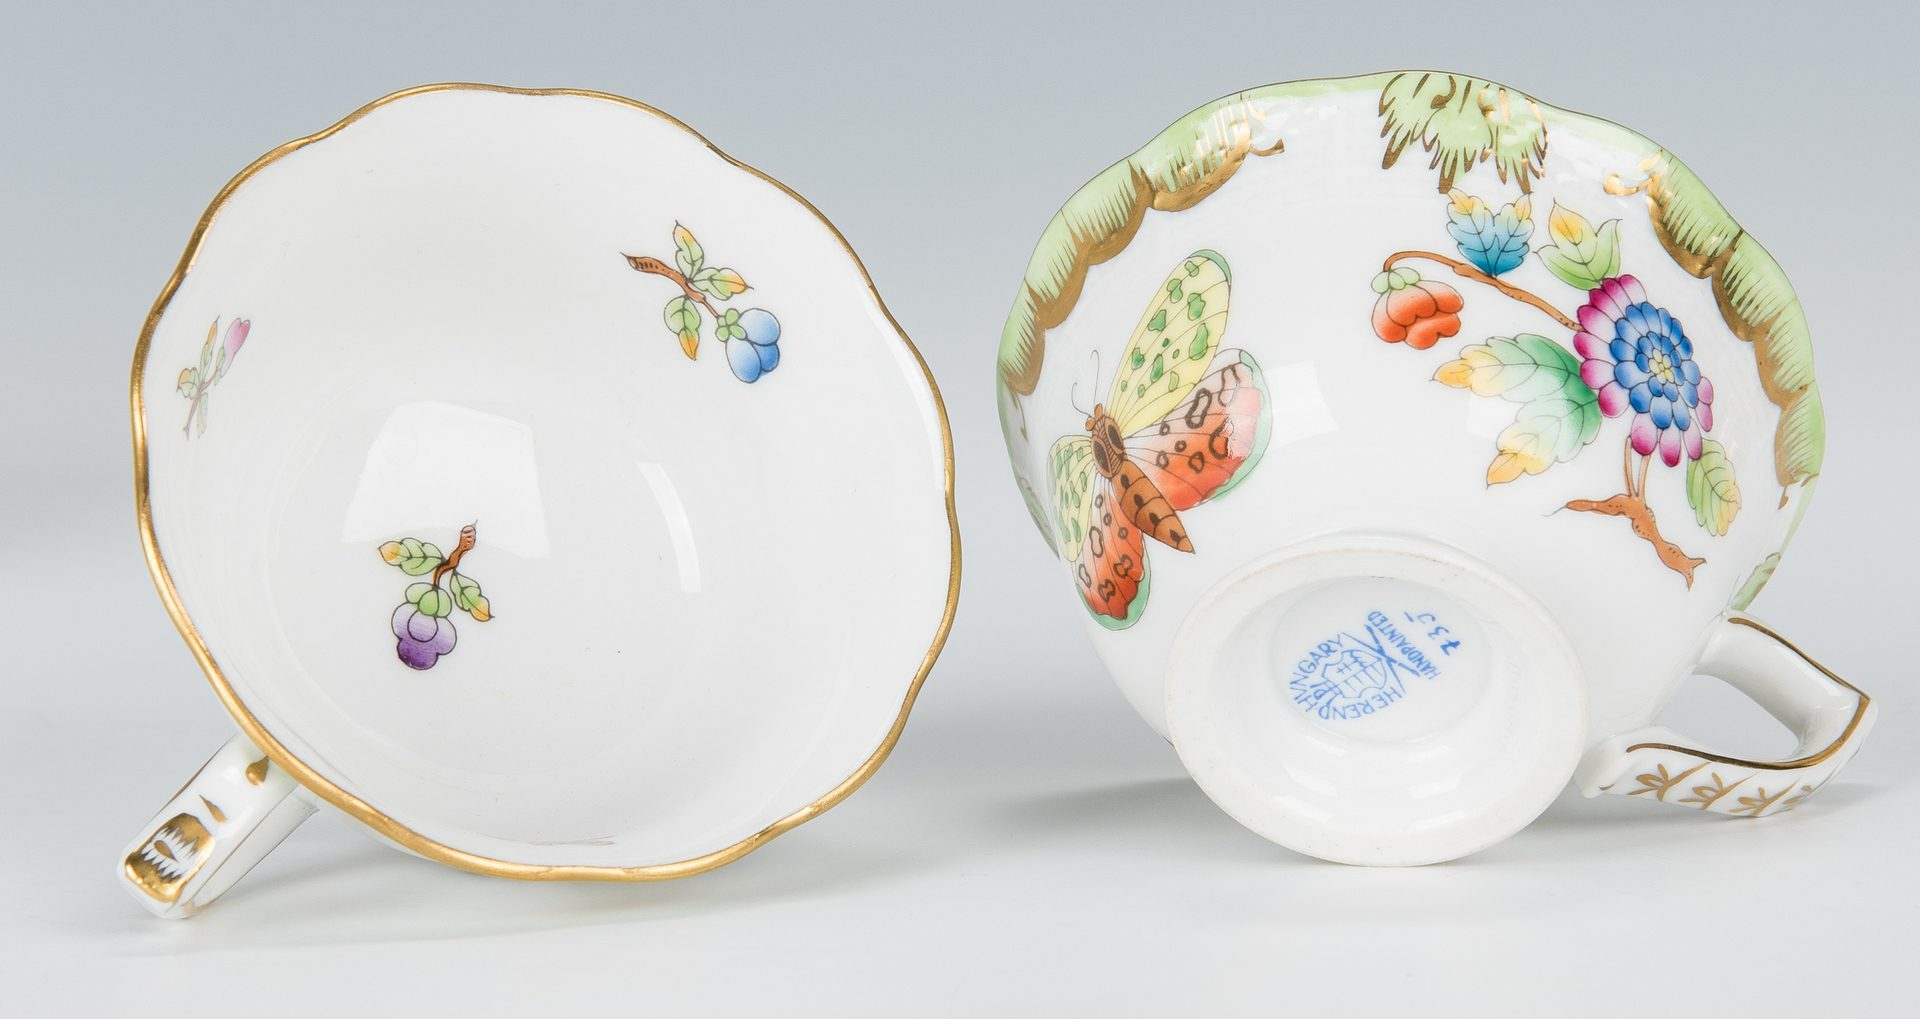 Lot 507: 5 Pcs. Herend Porcelain, mostly Queen Victoria